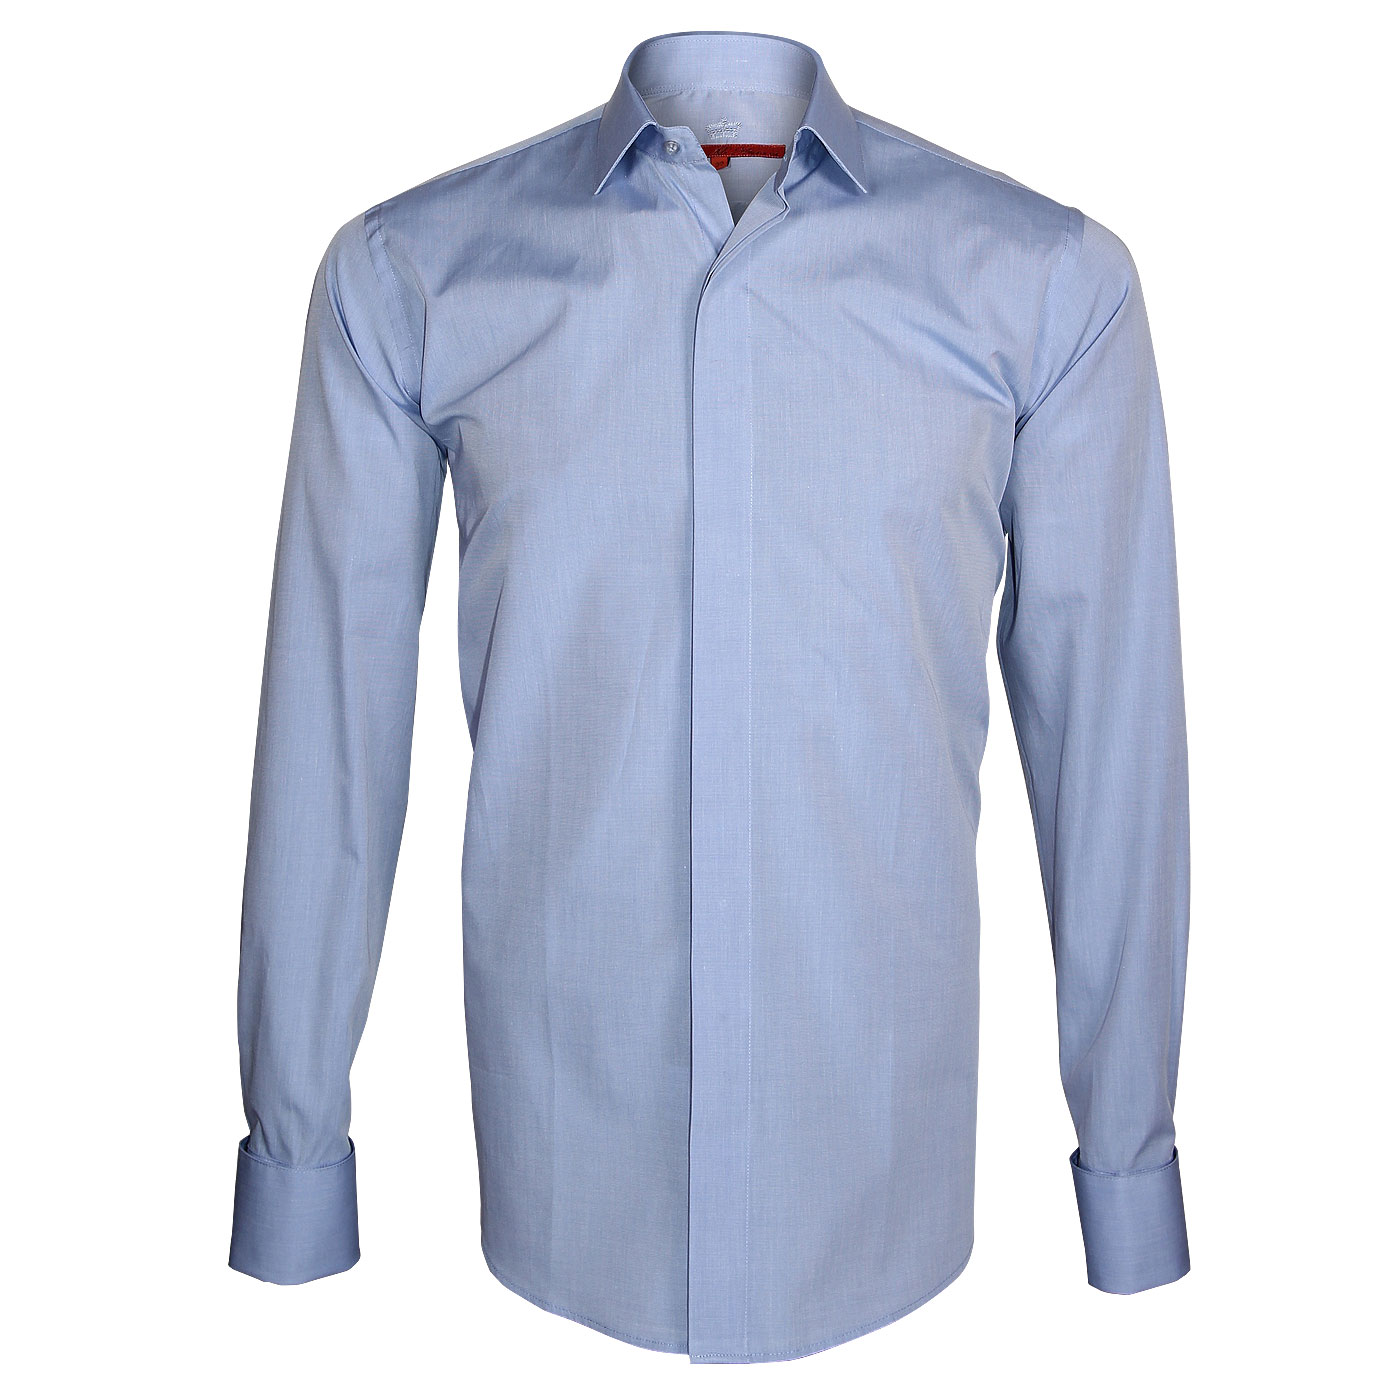 Chemise Coupe Droite Homme Collection Chemiseweb.com